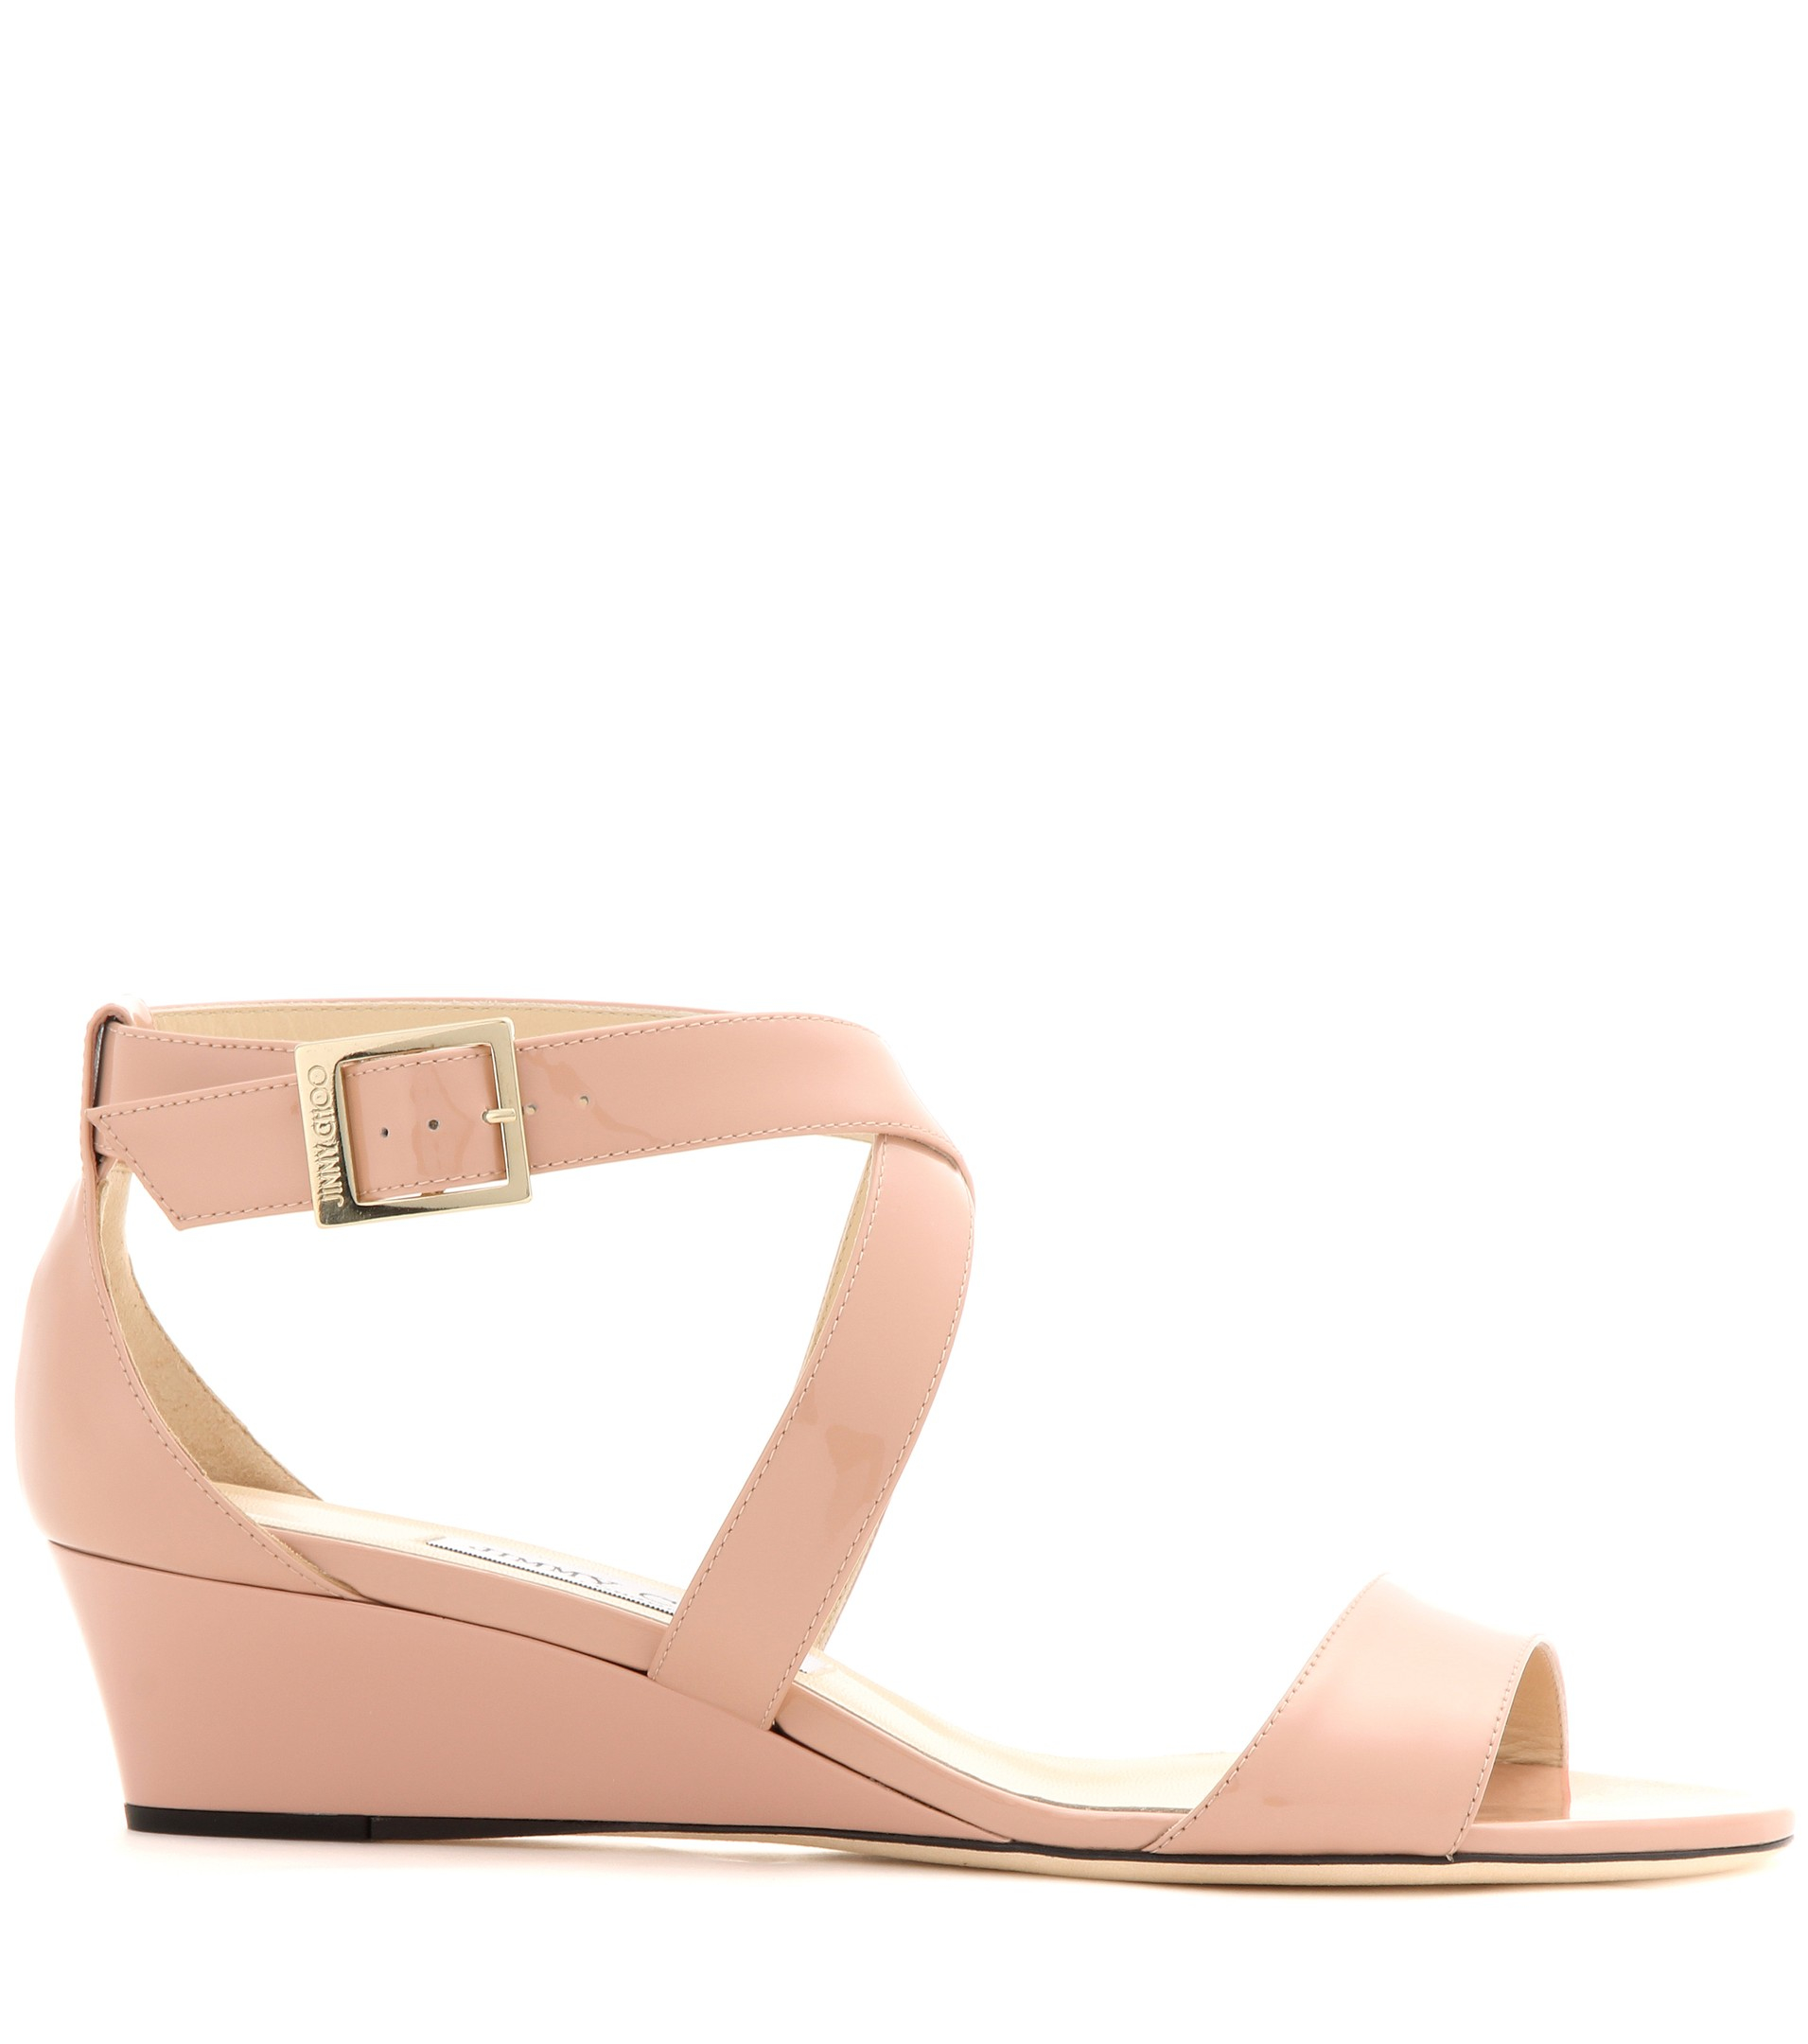 aaab799cb83e Lyst - Jimmy Choo Chiara Patent Leather Sandals in Pink